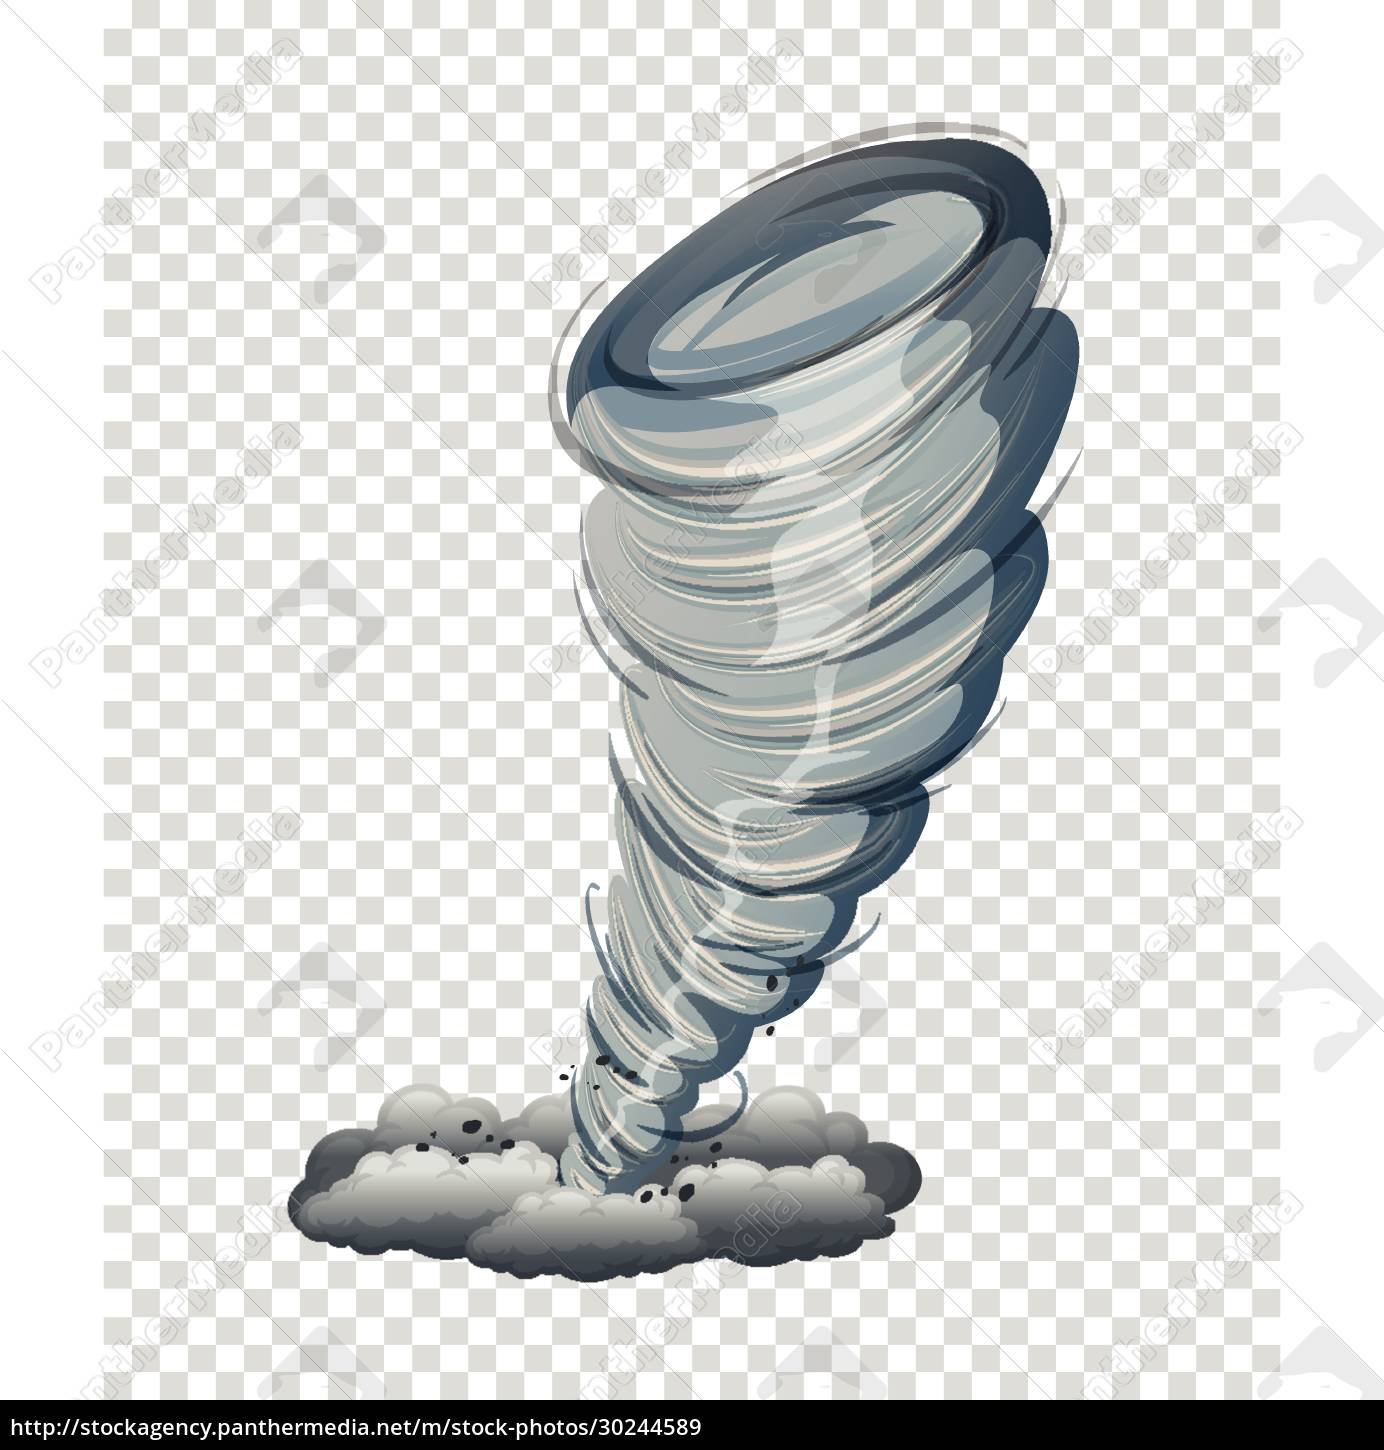 large, tornado, isolated, graphic - 30244589